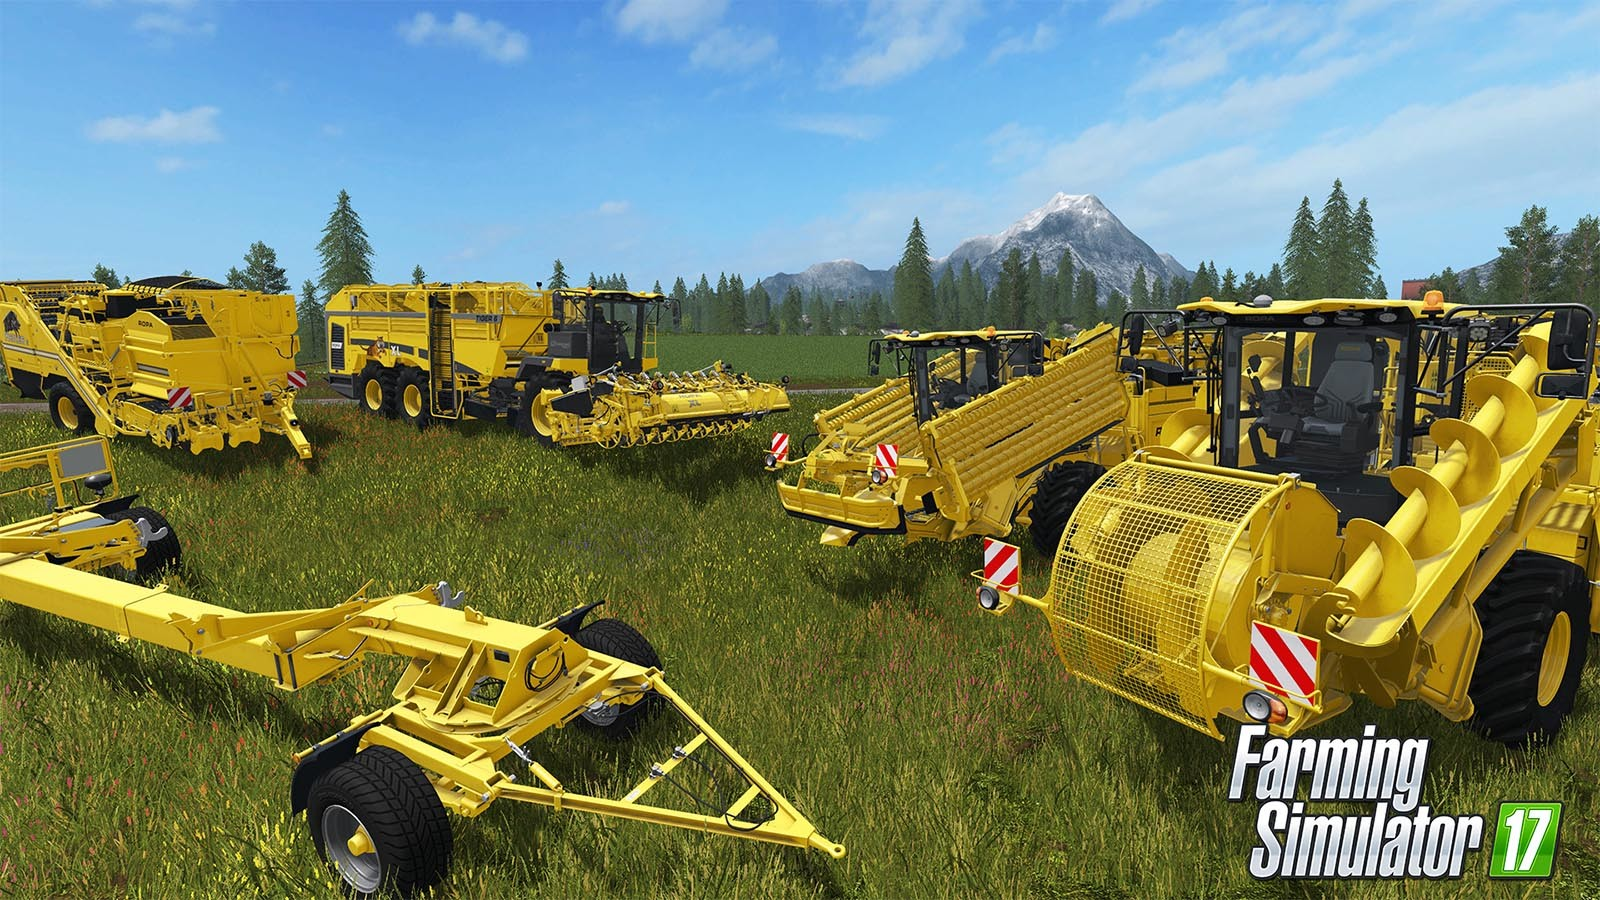 Farming Simulator 17 - ROPA Pack (Giants) [Giants Software CD Key] for PC  and Mac - Buy now